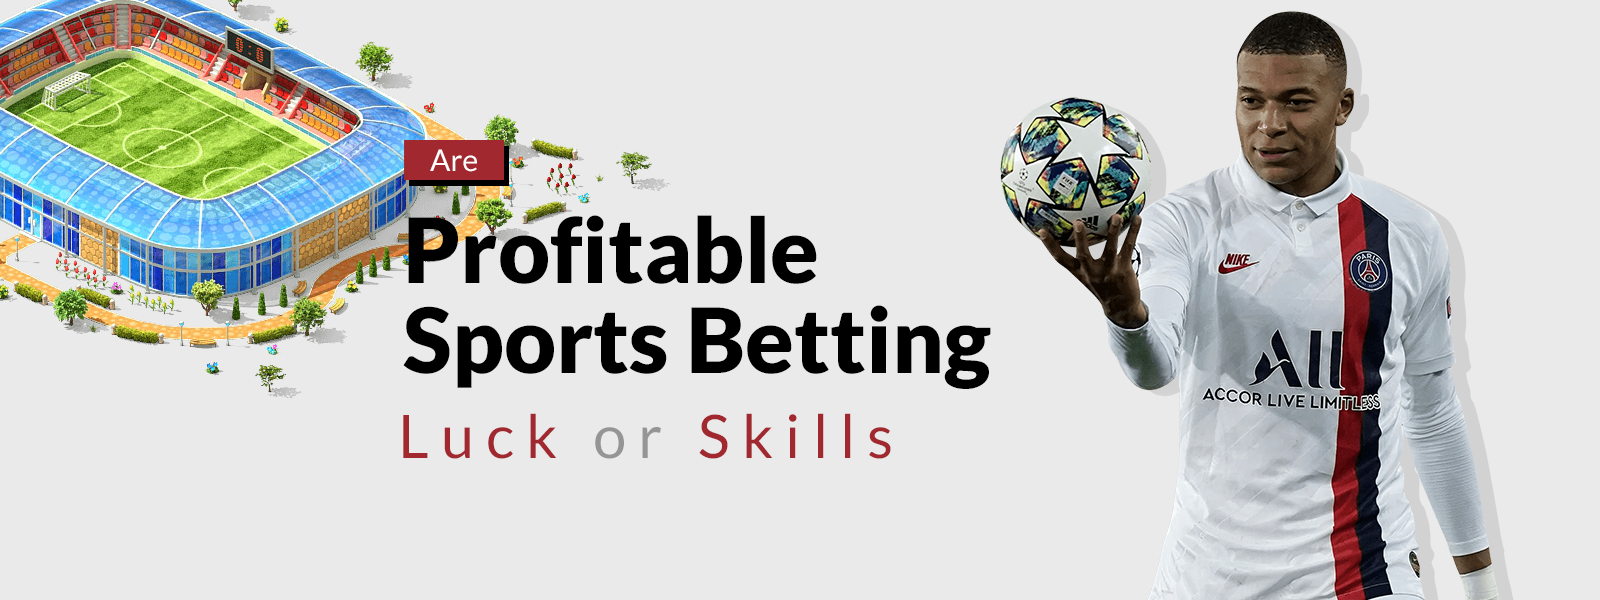 Are Profitable Sports Betting Luck or Skills?